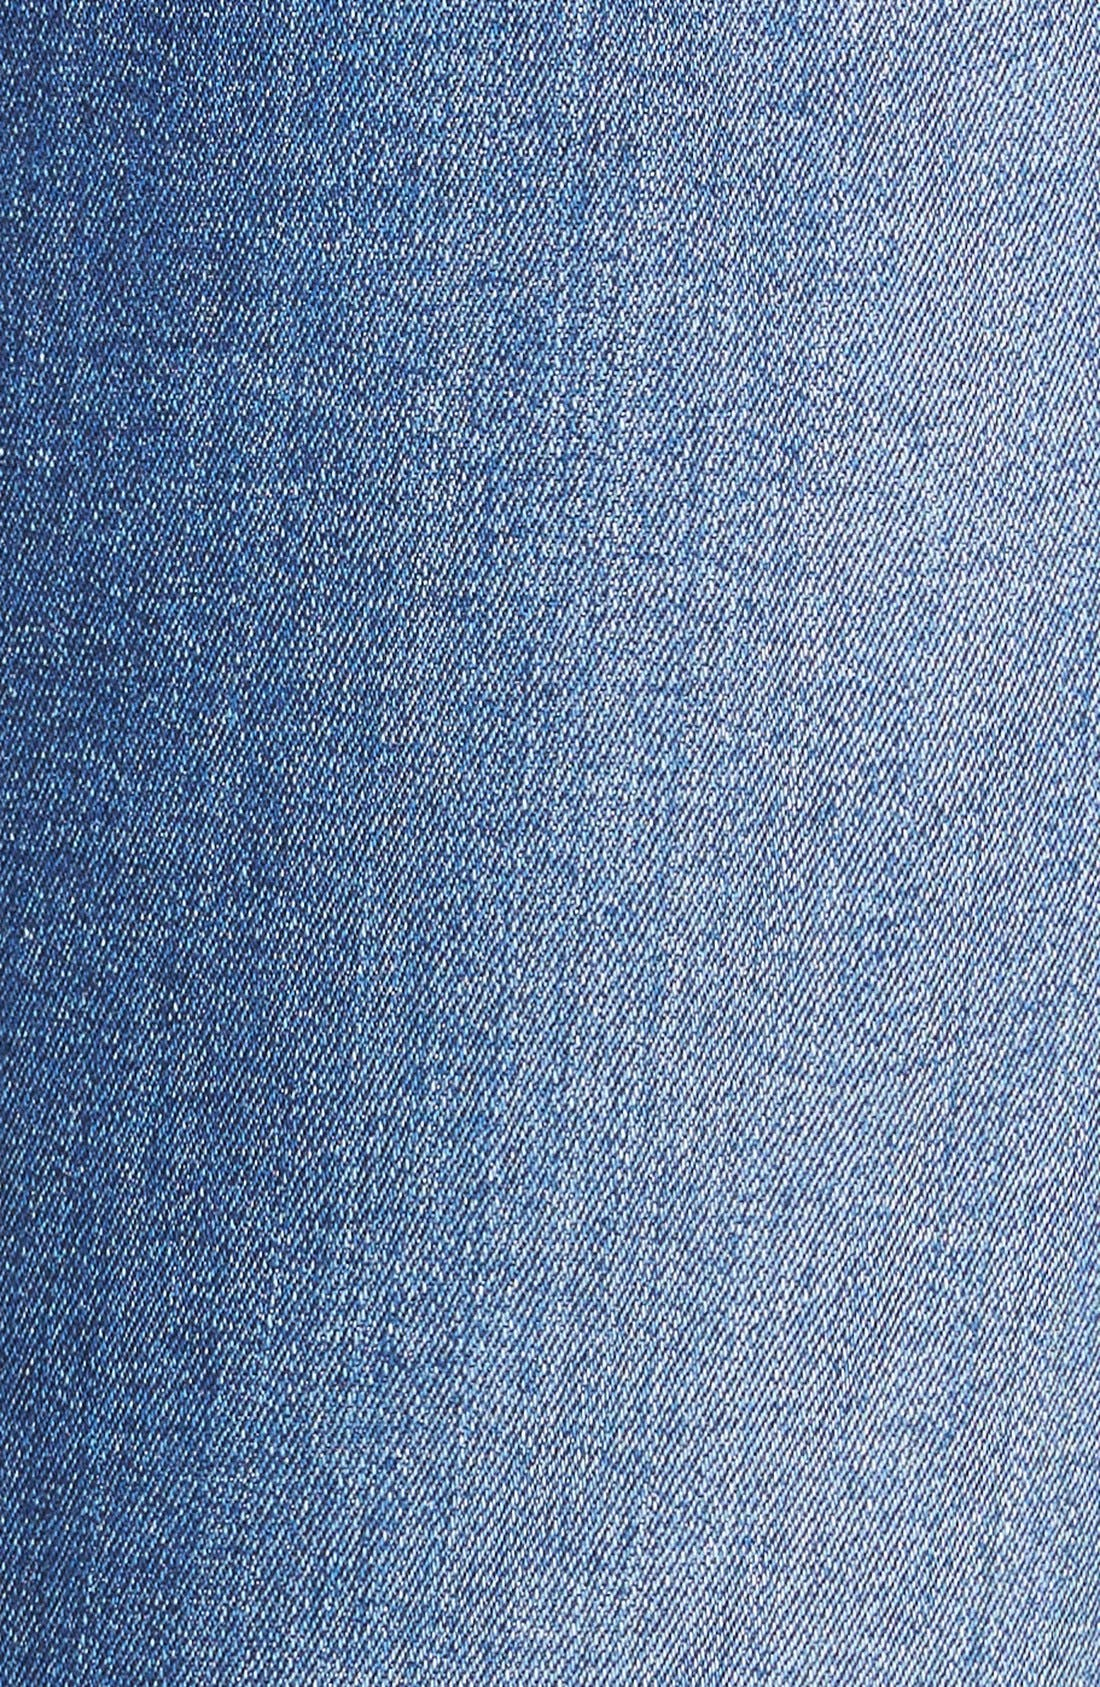 'b(air) - The Ankle' Skinny Jeans,                             Alternate thumbnail 35, color,